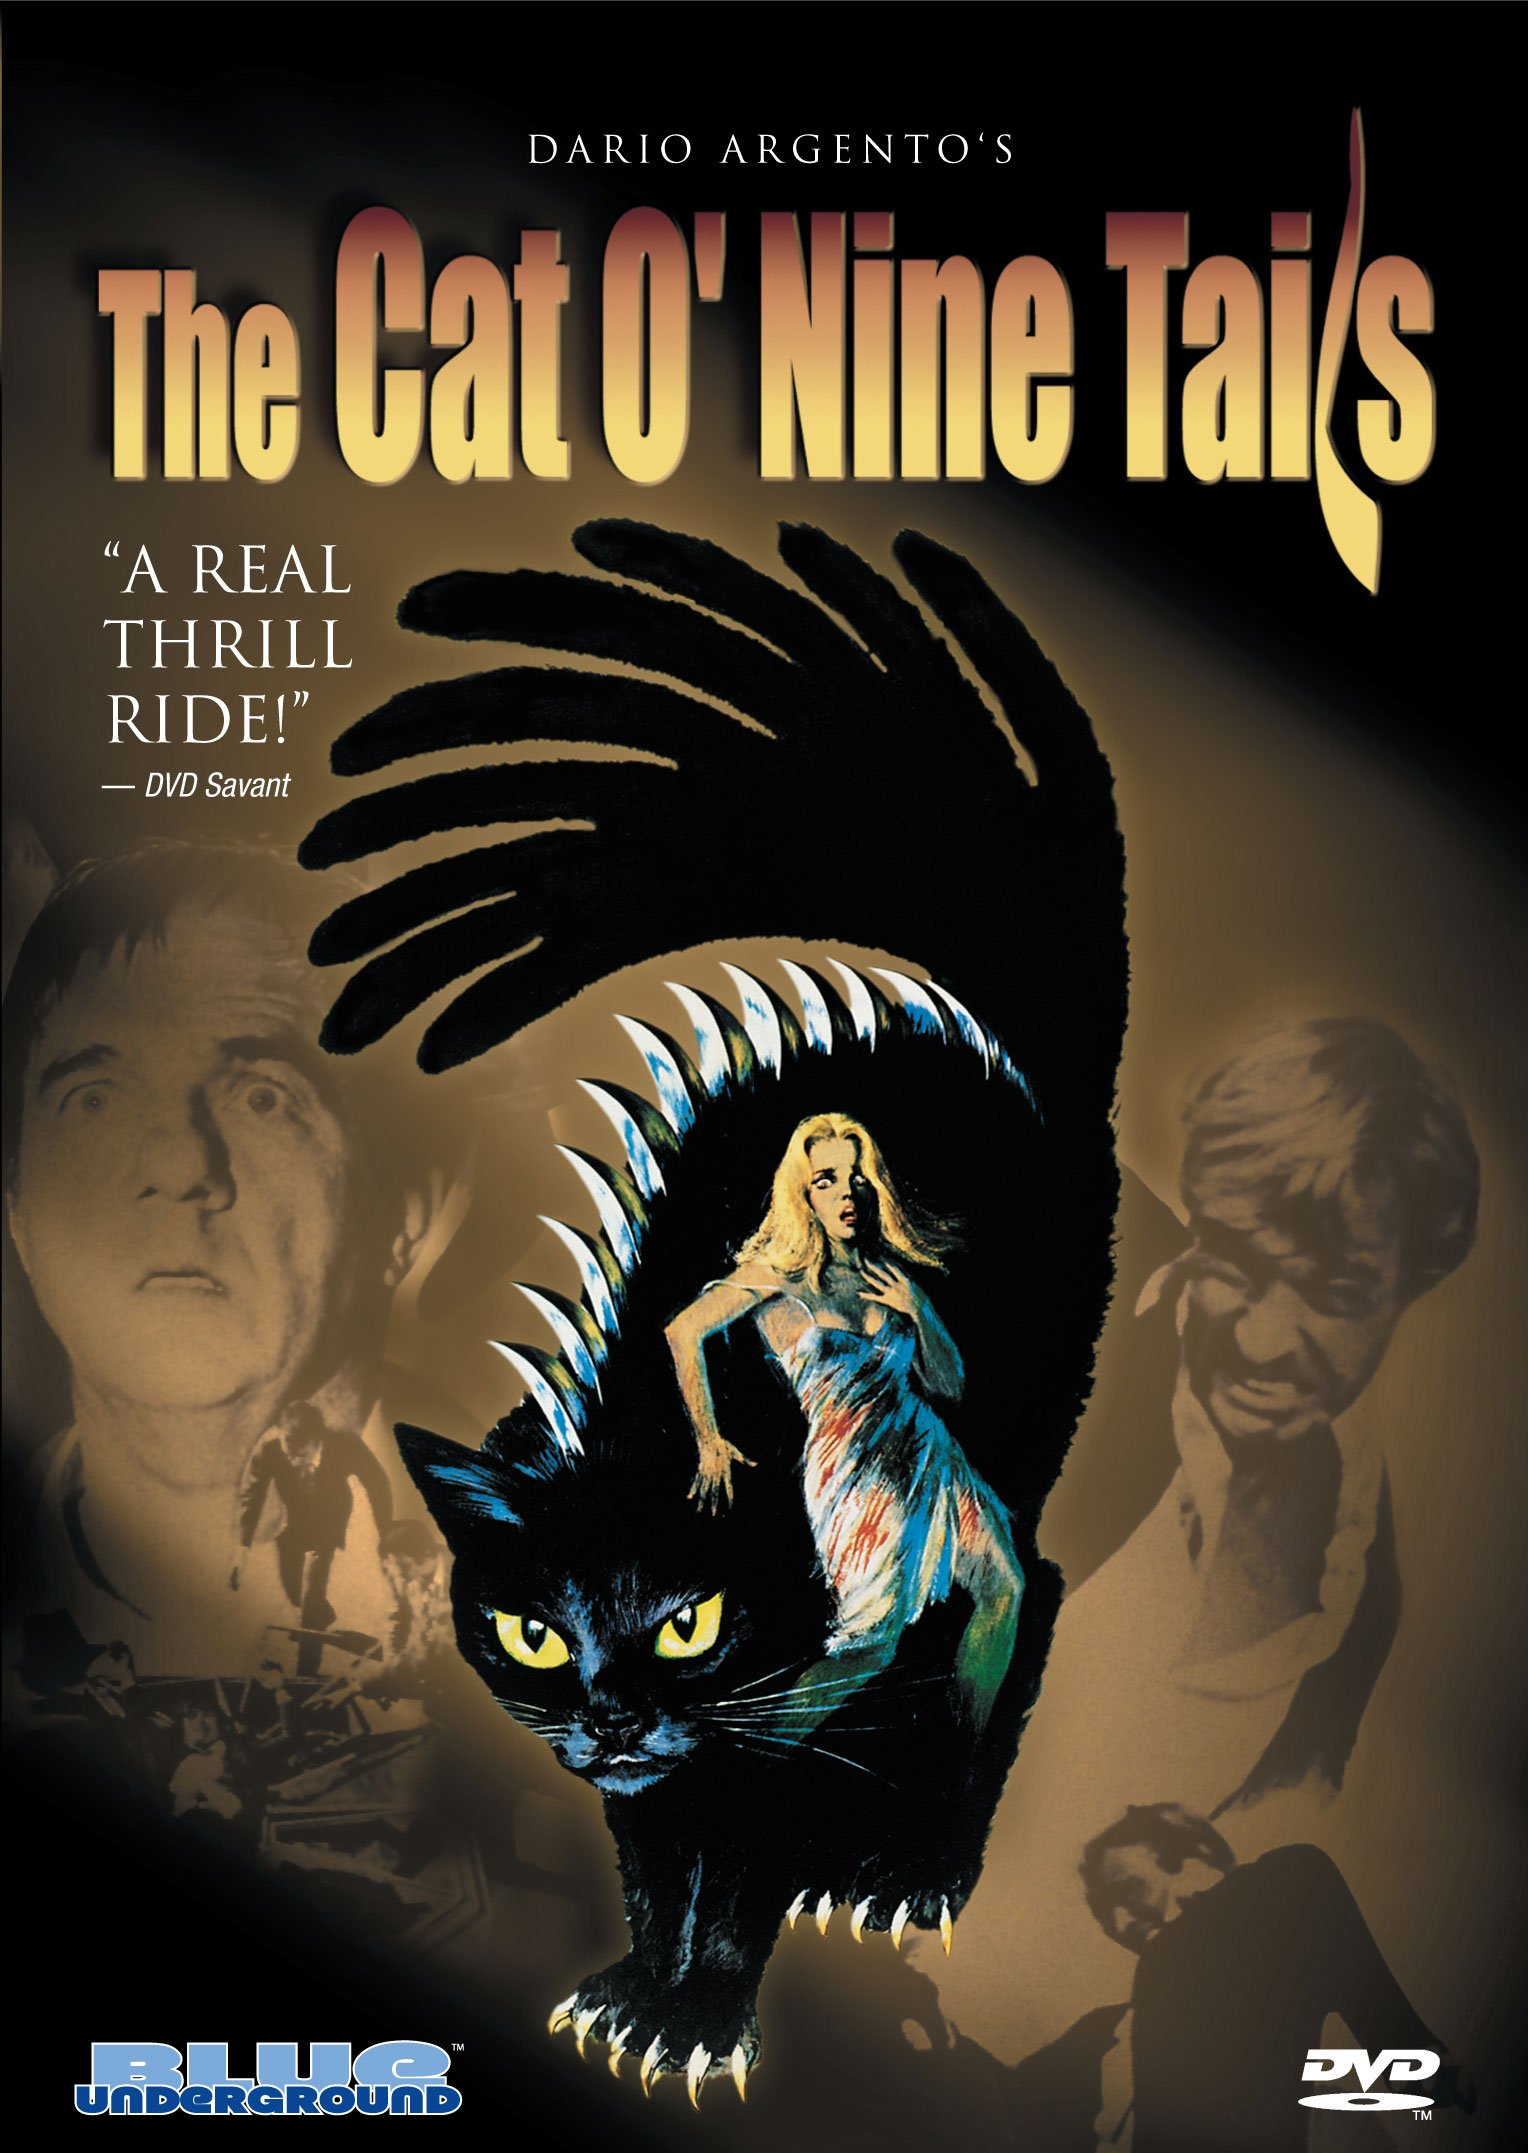 DVD : The Cat O' Nine Tails (Dolby, Widescreen)